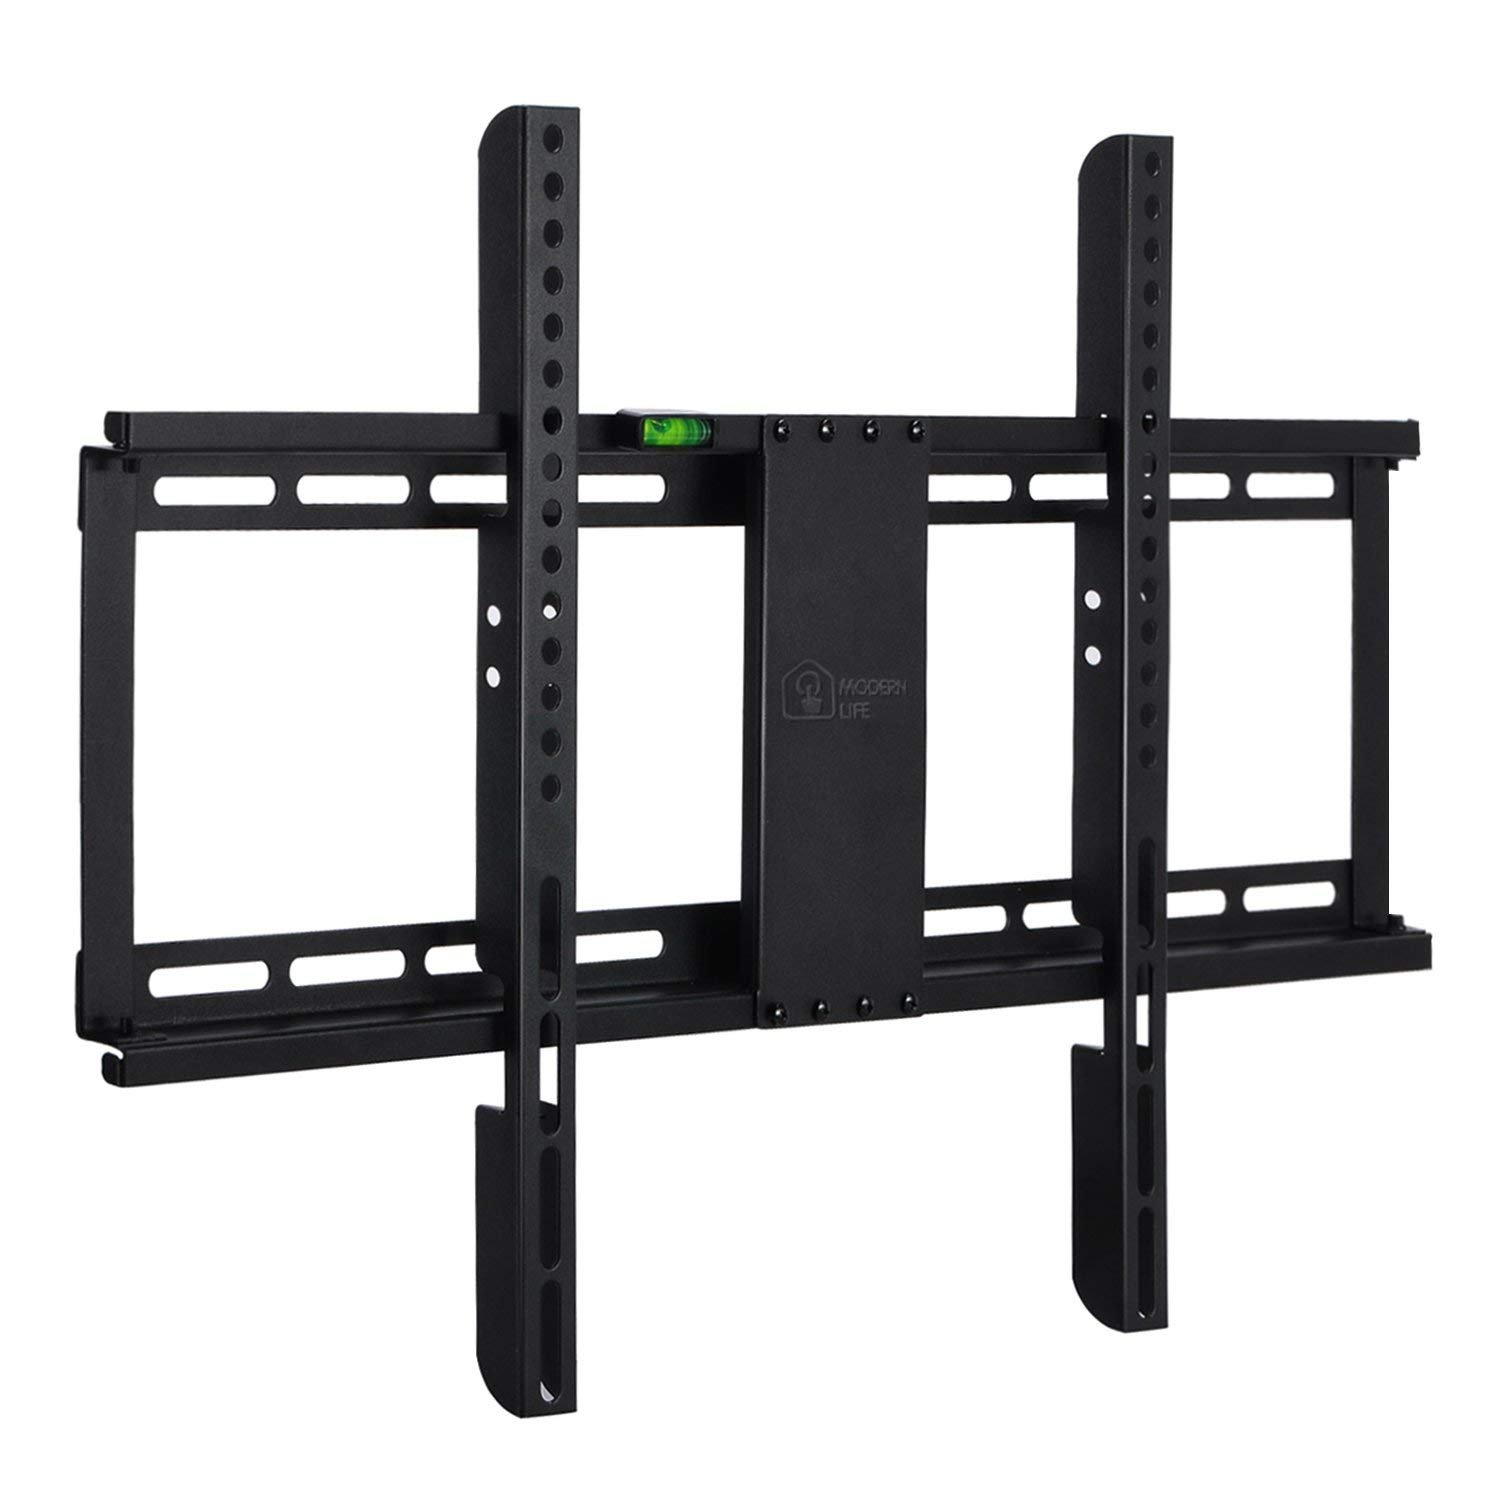 Happyjoy Ultra Slim 1'' Fixed TV Wall Mount Bracket for 32-70 Inch LED LCD Plasma HDTV Smart TV, Max VESA 600x400mm, Super Strong 165 LBS Capacity, Bubble Level Included